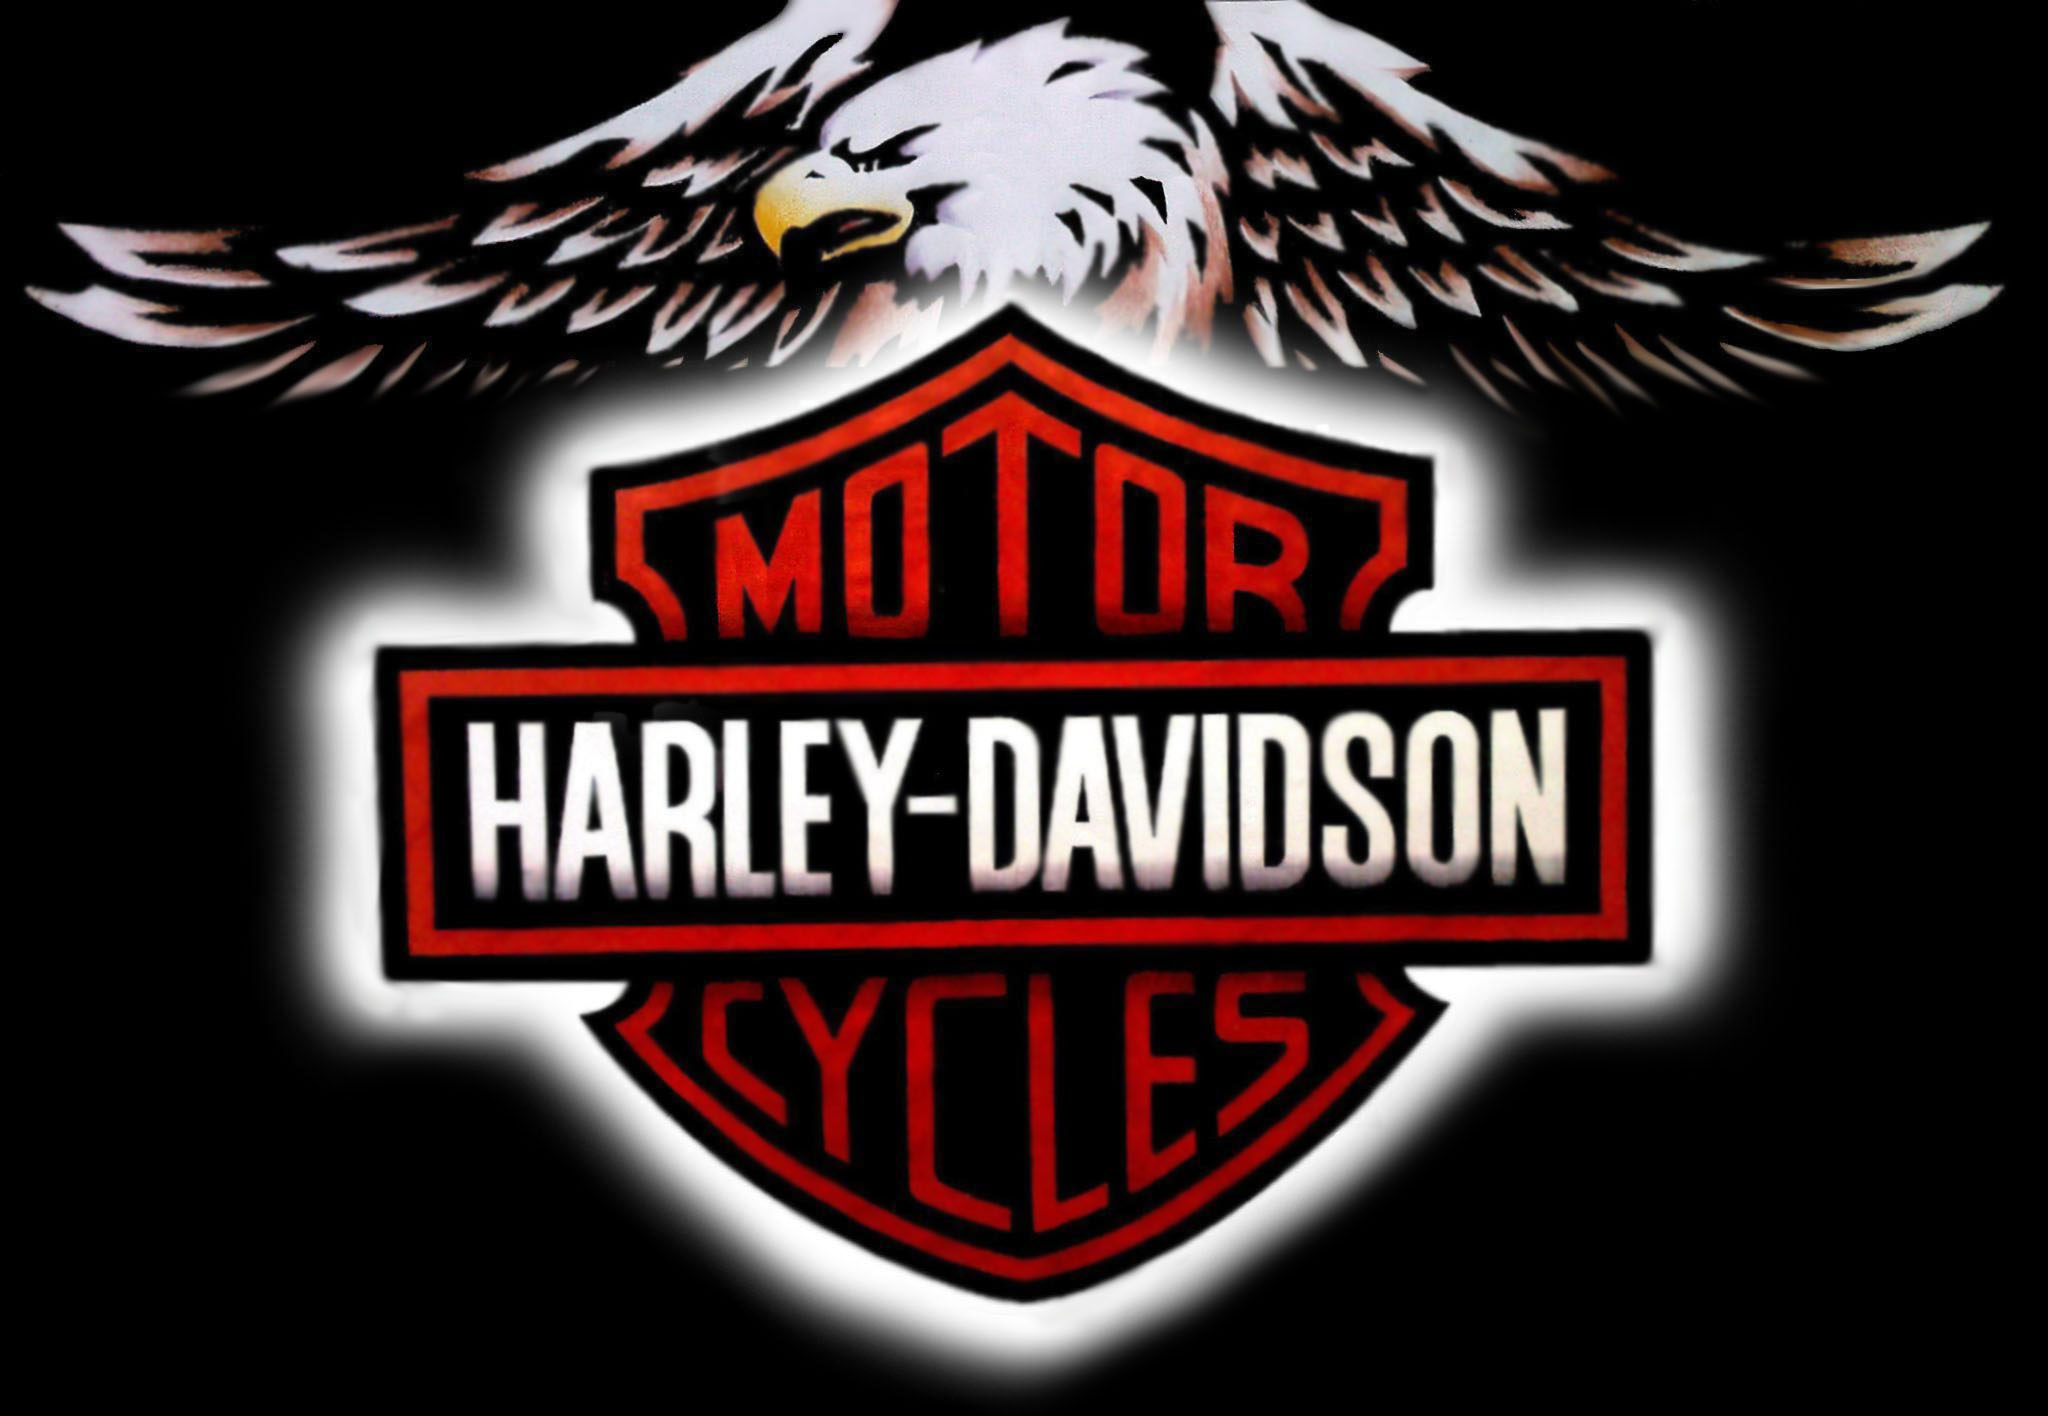 harley davidson wallpapers and screensavers harley davidson eagle 2048x1416